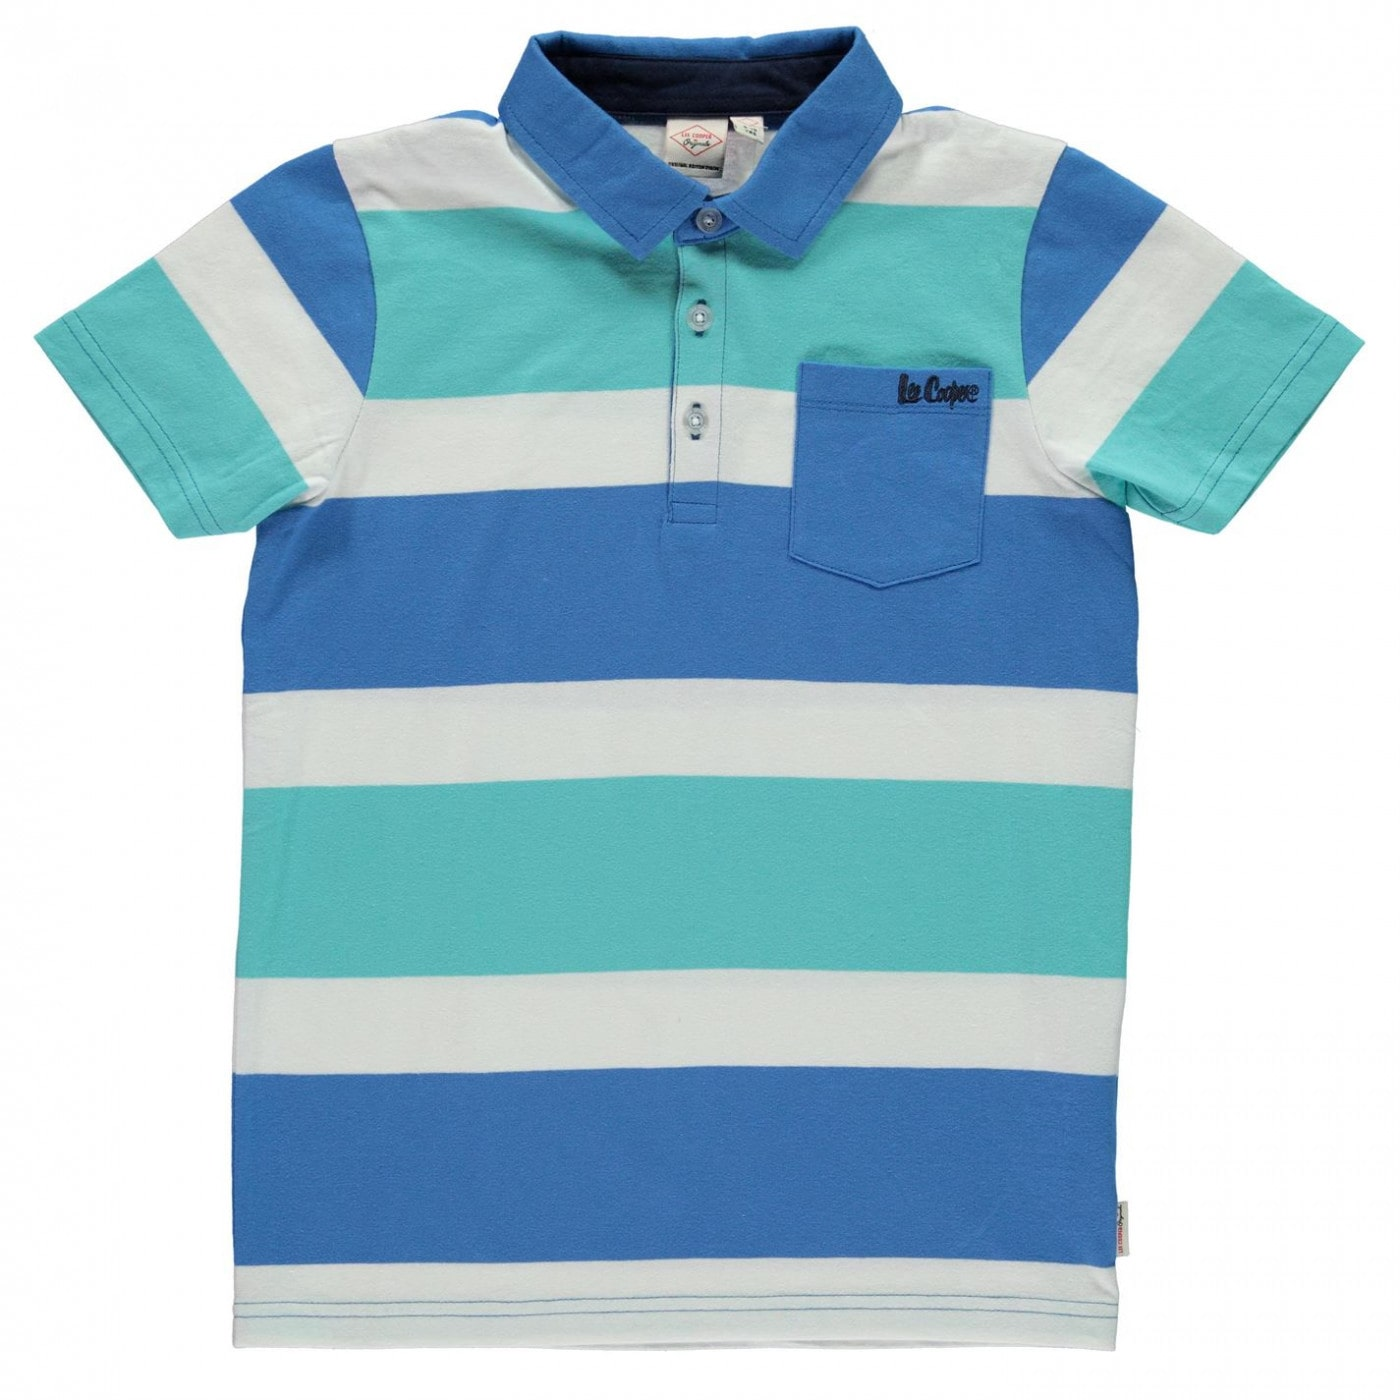 bc7728131a0 Lee Cooper Stripe Polo Shirt Junior - FACTCOOL